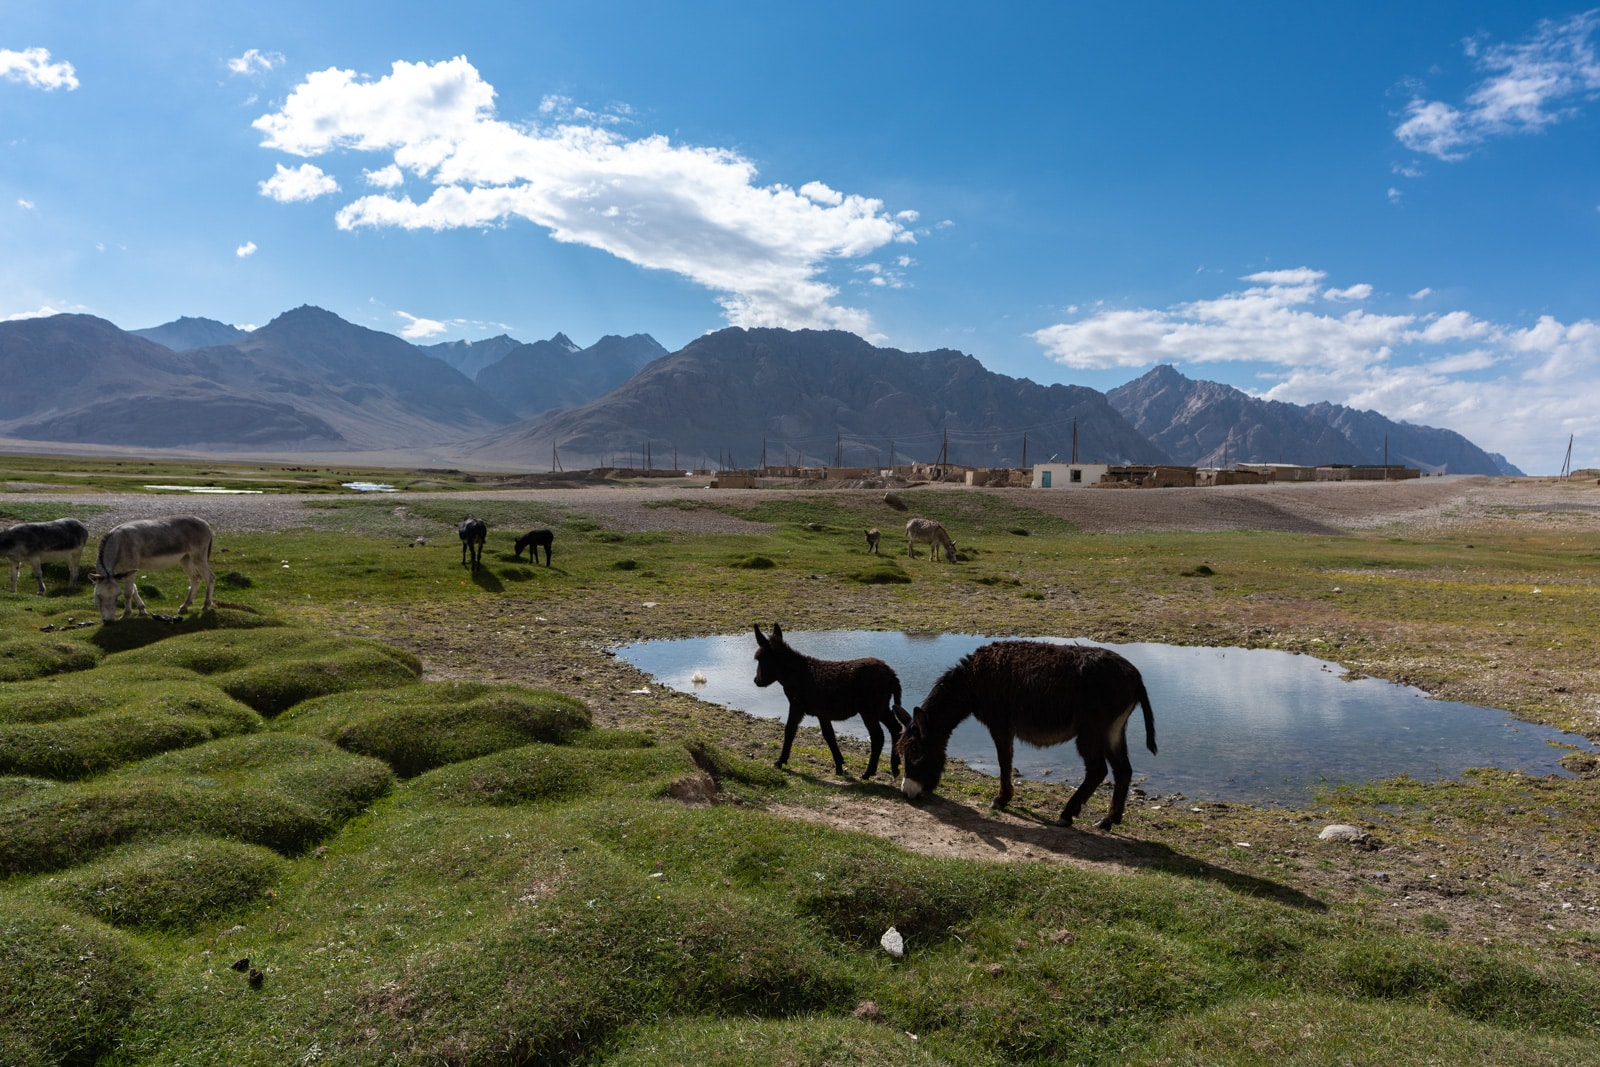 Donkeys in Shaimak